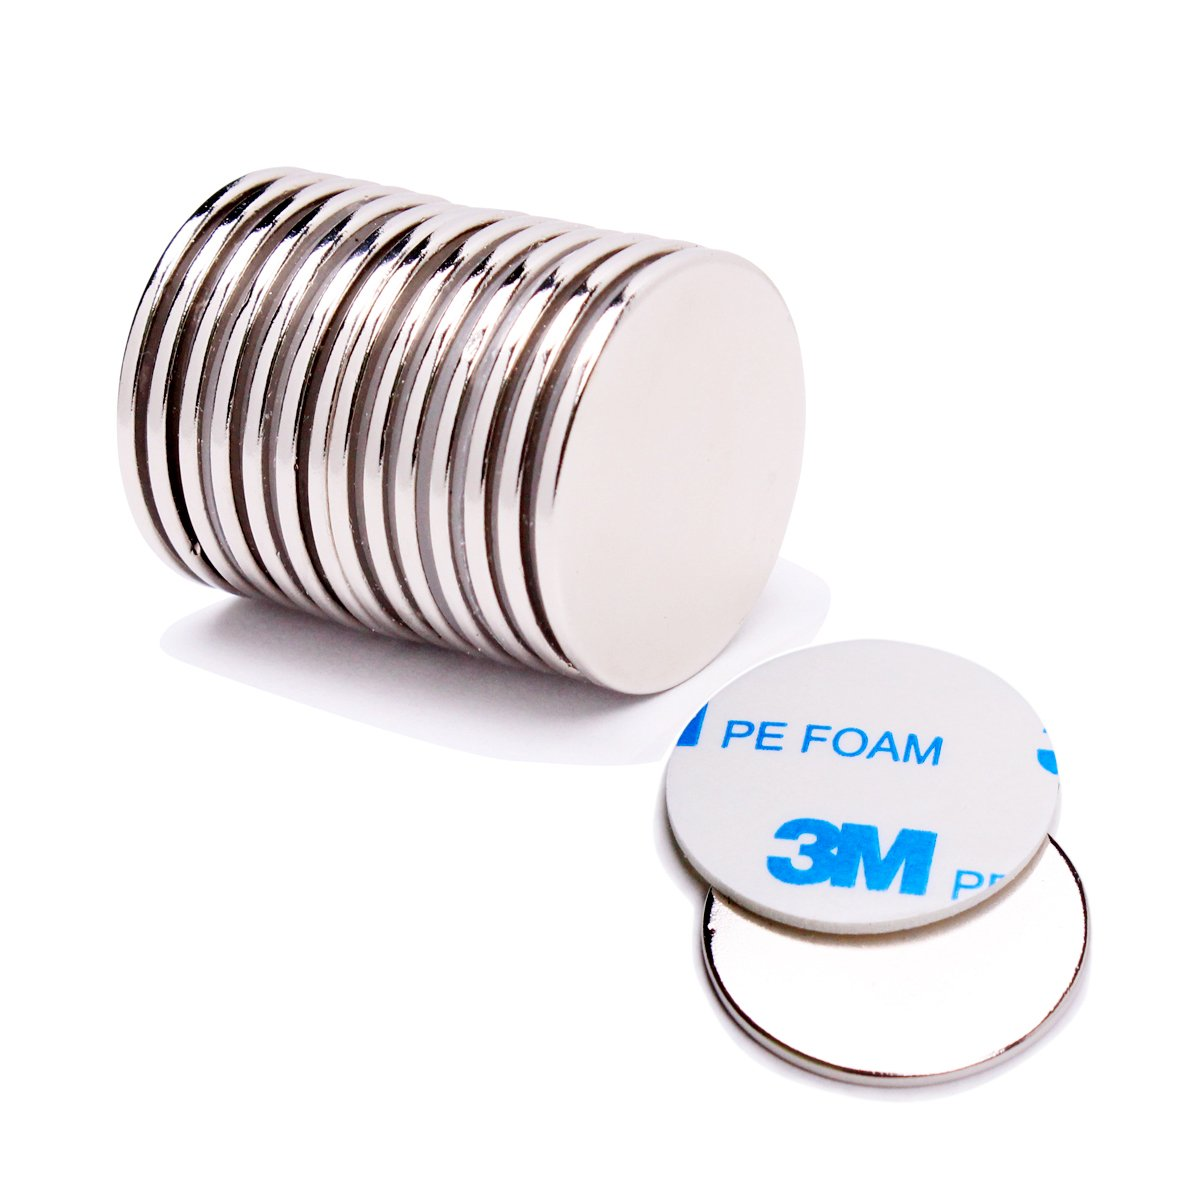 "FEYG Rare Earth Magnets 6Pcs Extra Strength Neodymium Disc Magnet with Adhesive Backing for DIY /& Fridge Magnet 1.26/""D x 1//12/""H NEG-DicsMag-B2"